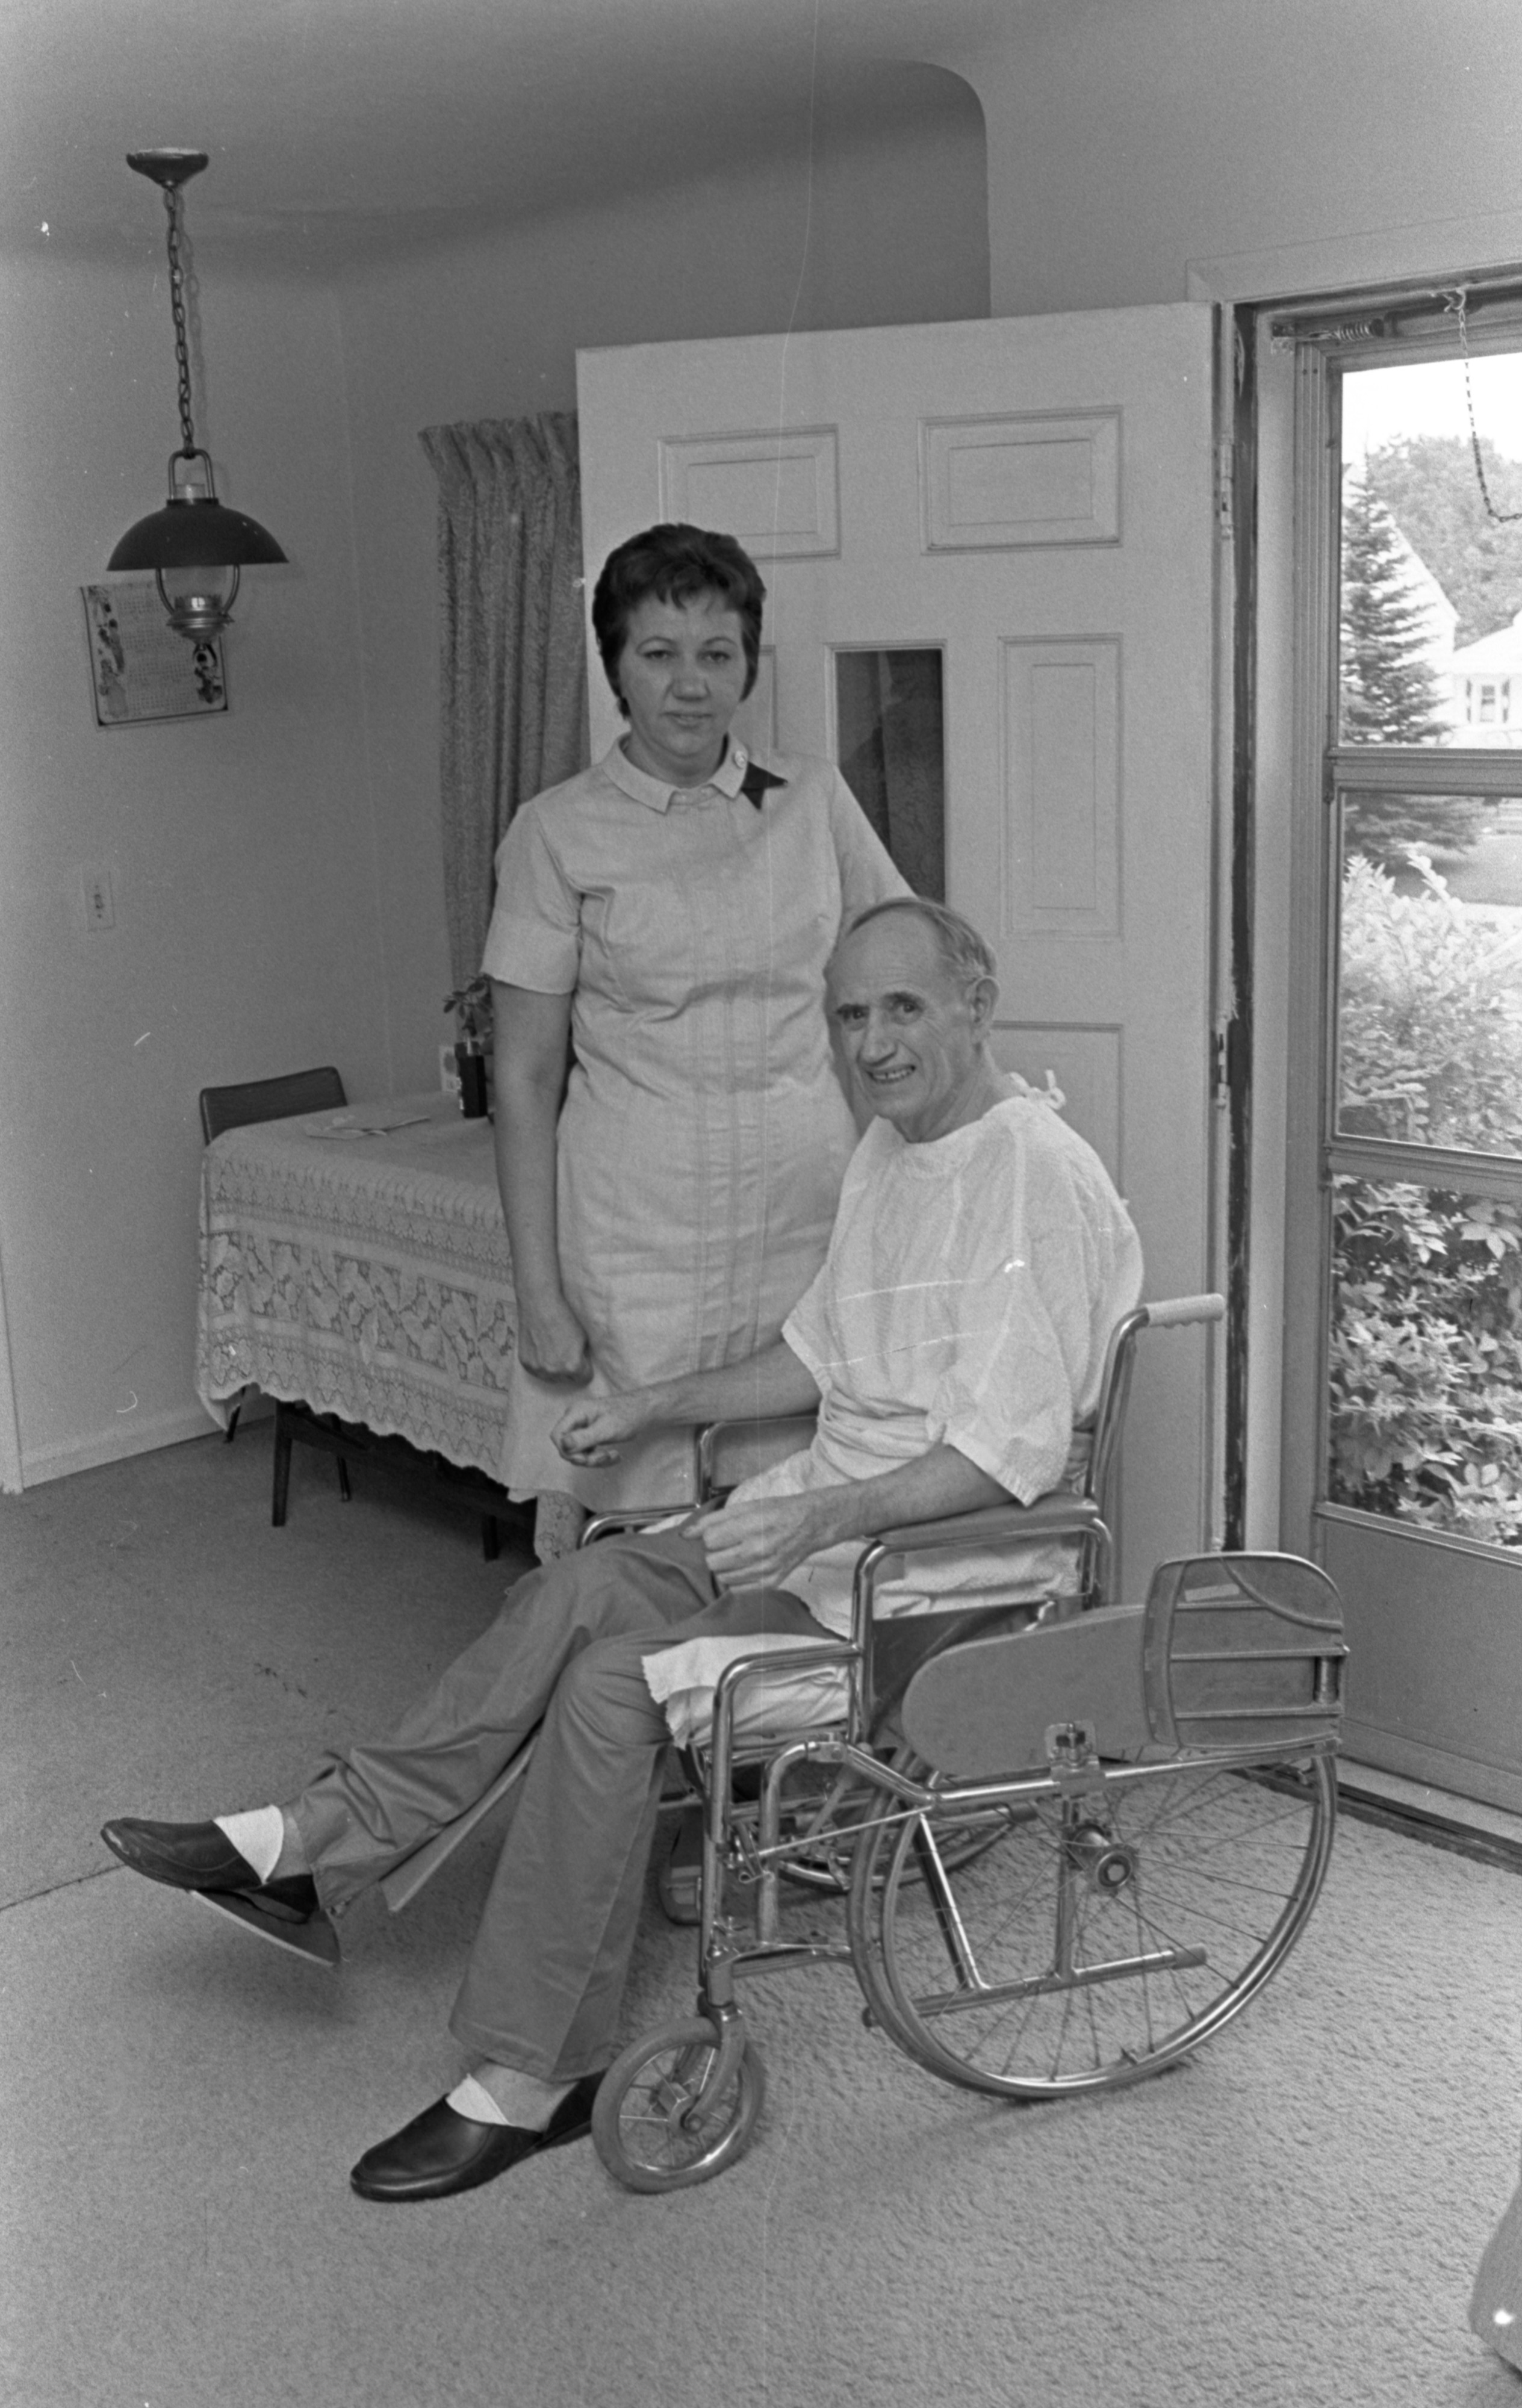 Mrs. Leonard Lewinski, Visiting Nurse, Helps Everett Fox At His Home, July 1970 image